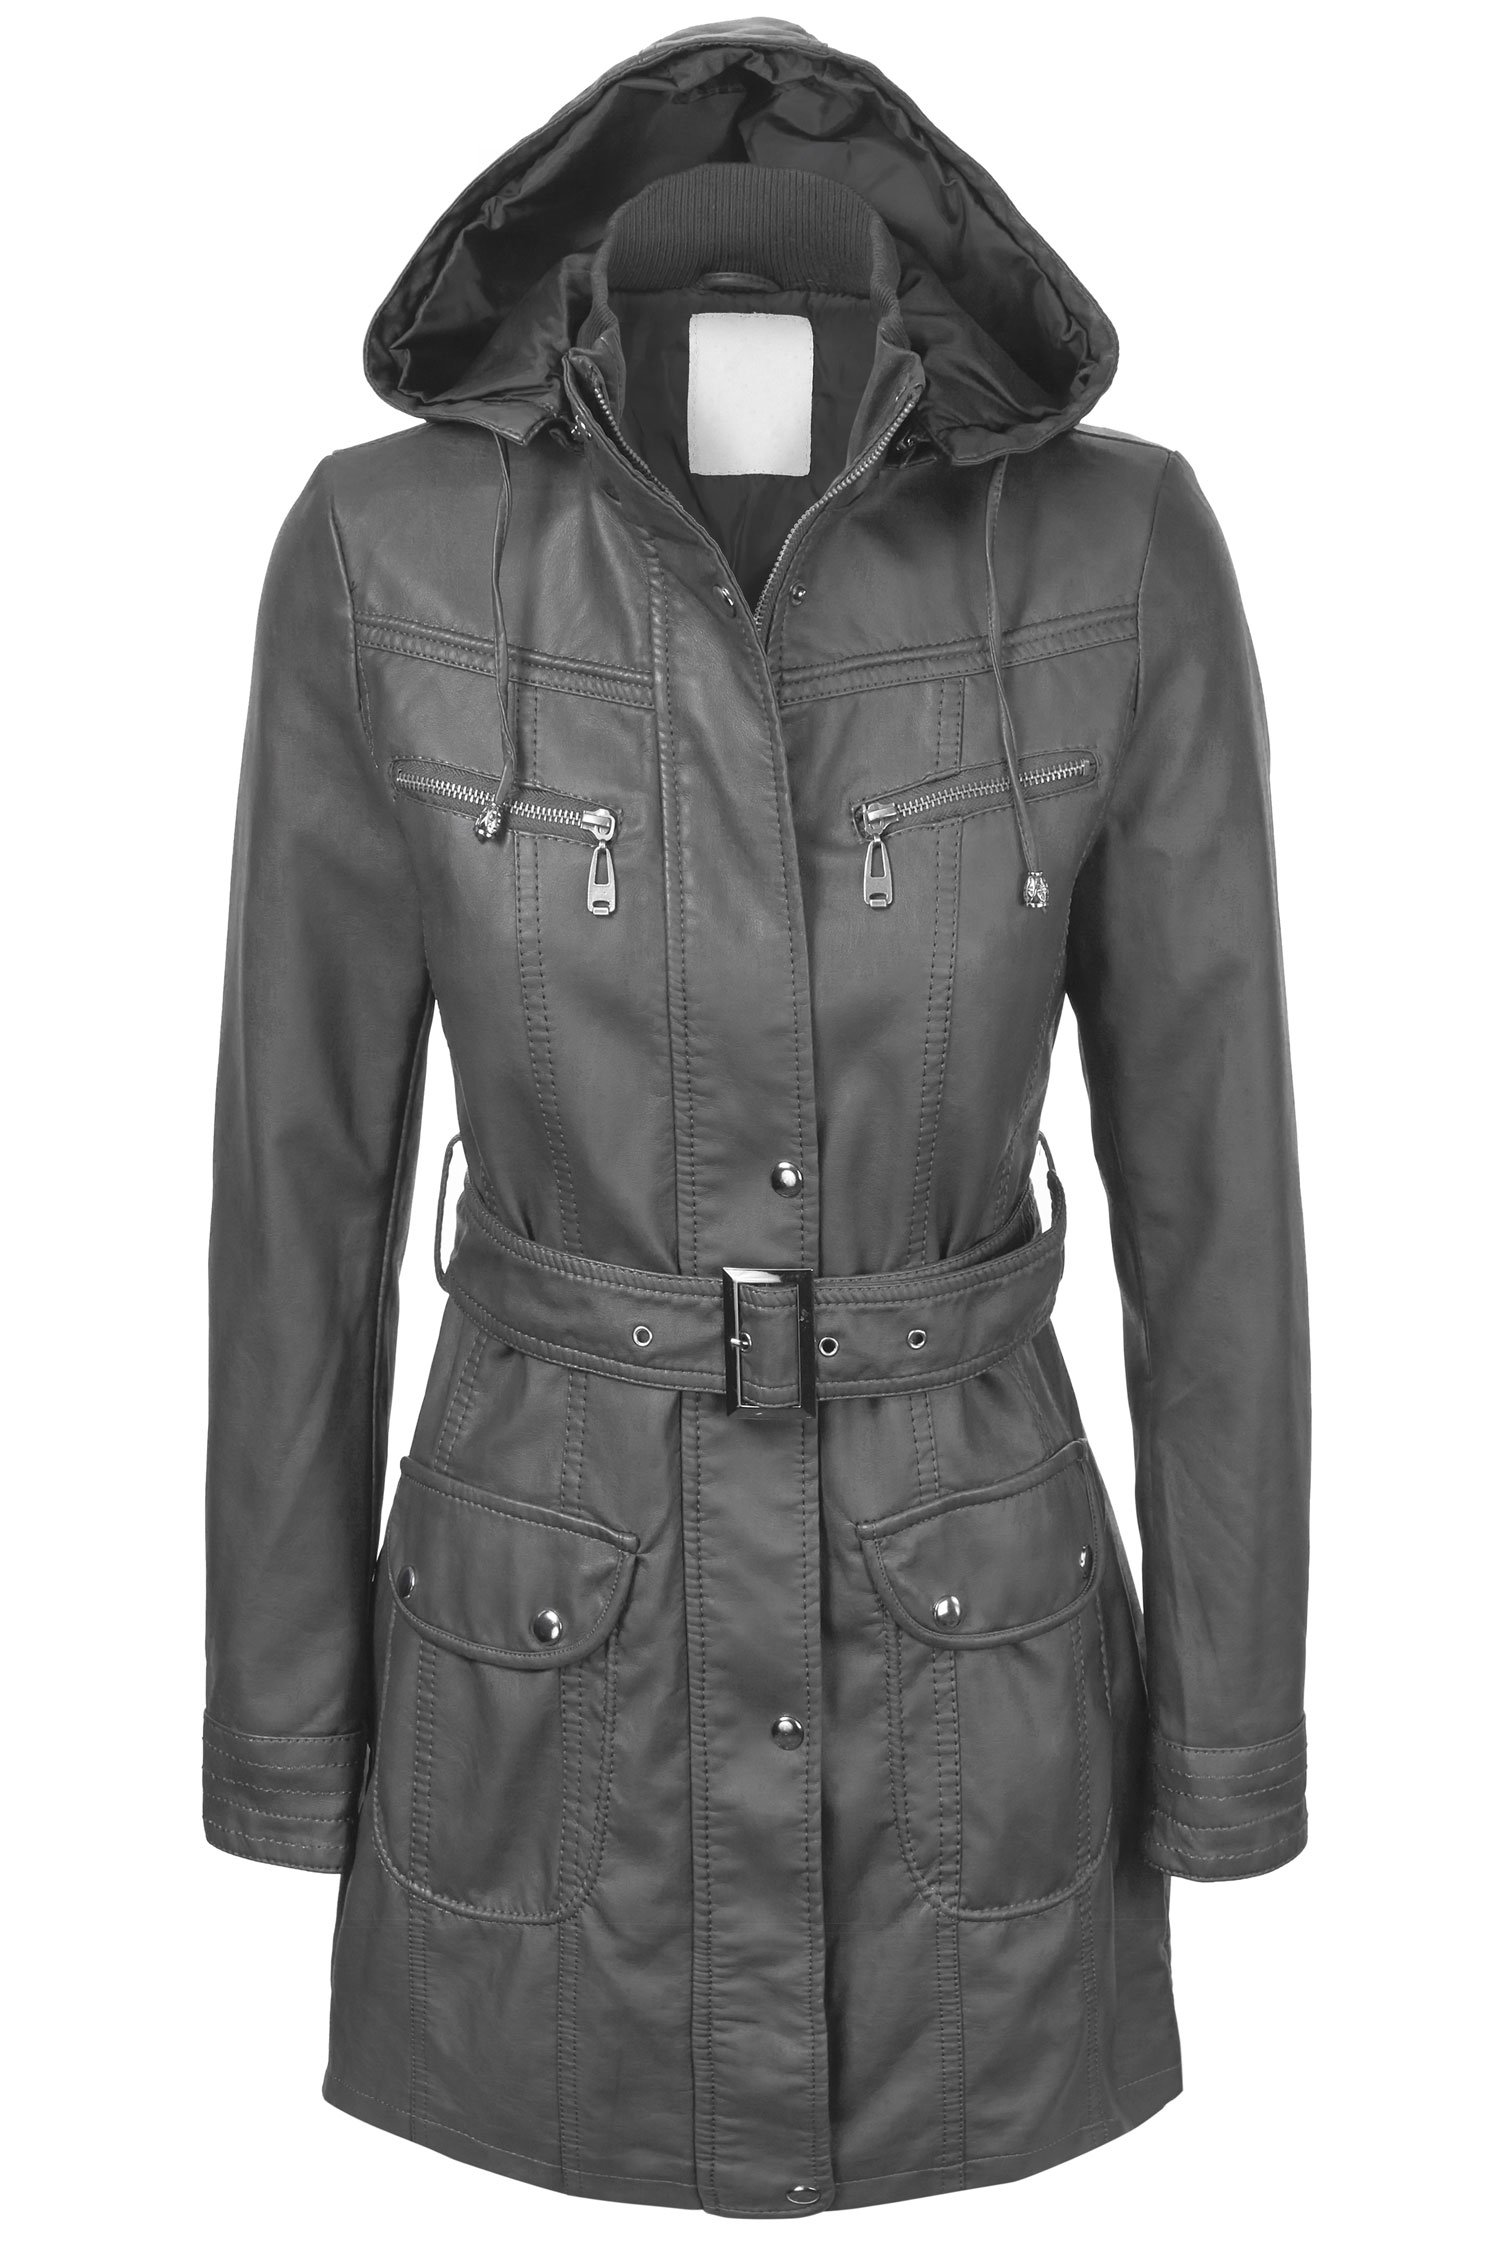 Lock and Love LL WJC741 Womens Hooded Faux Leather Trench Parka Coat L Gray